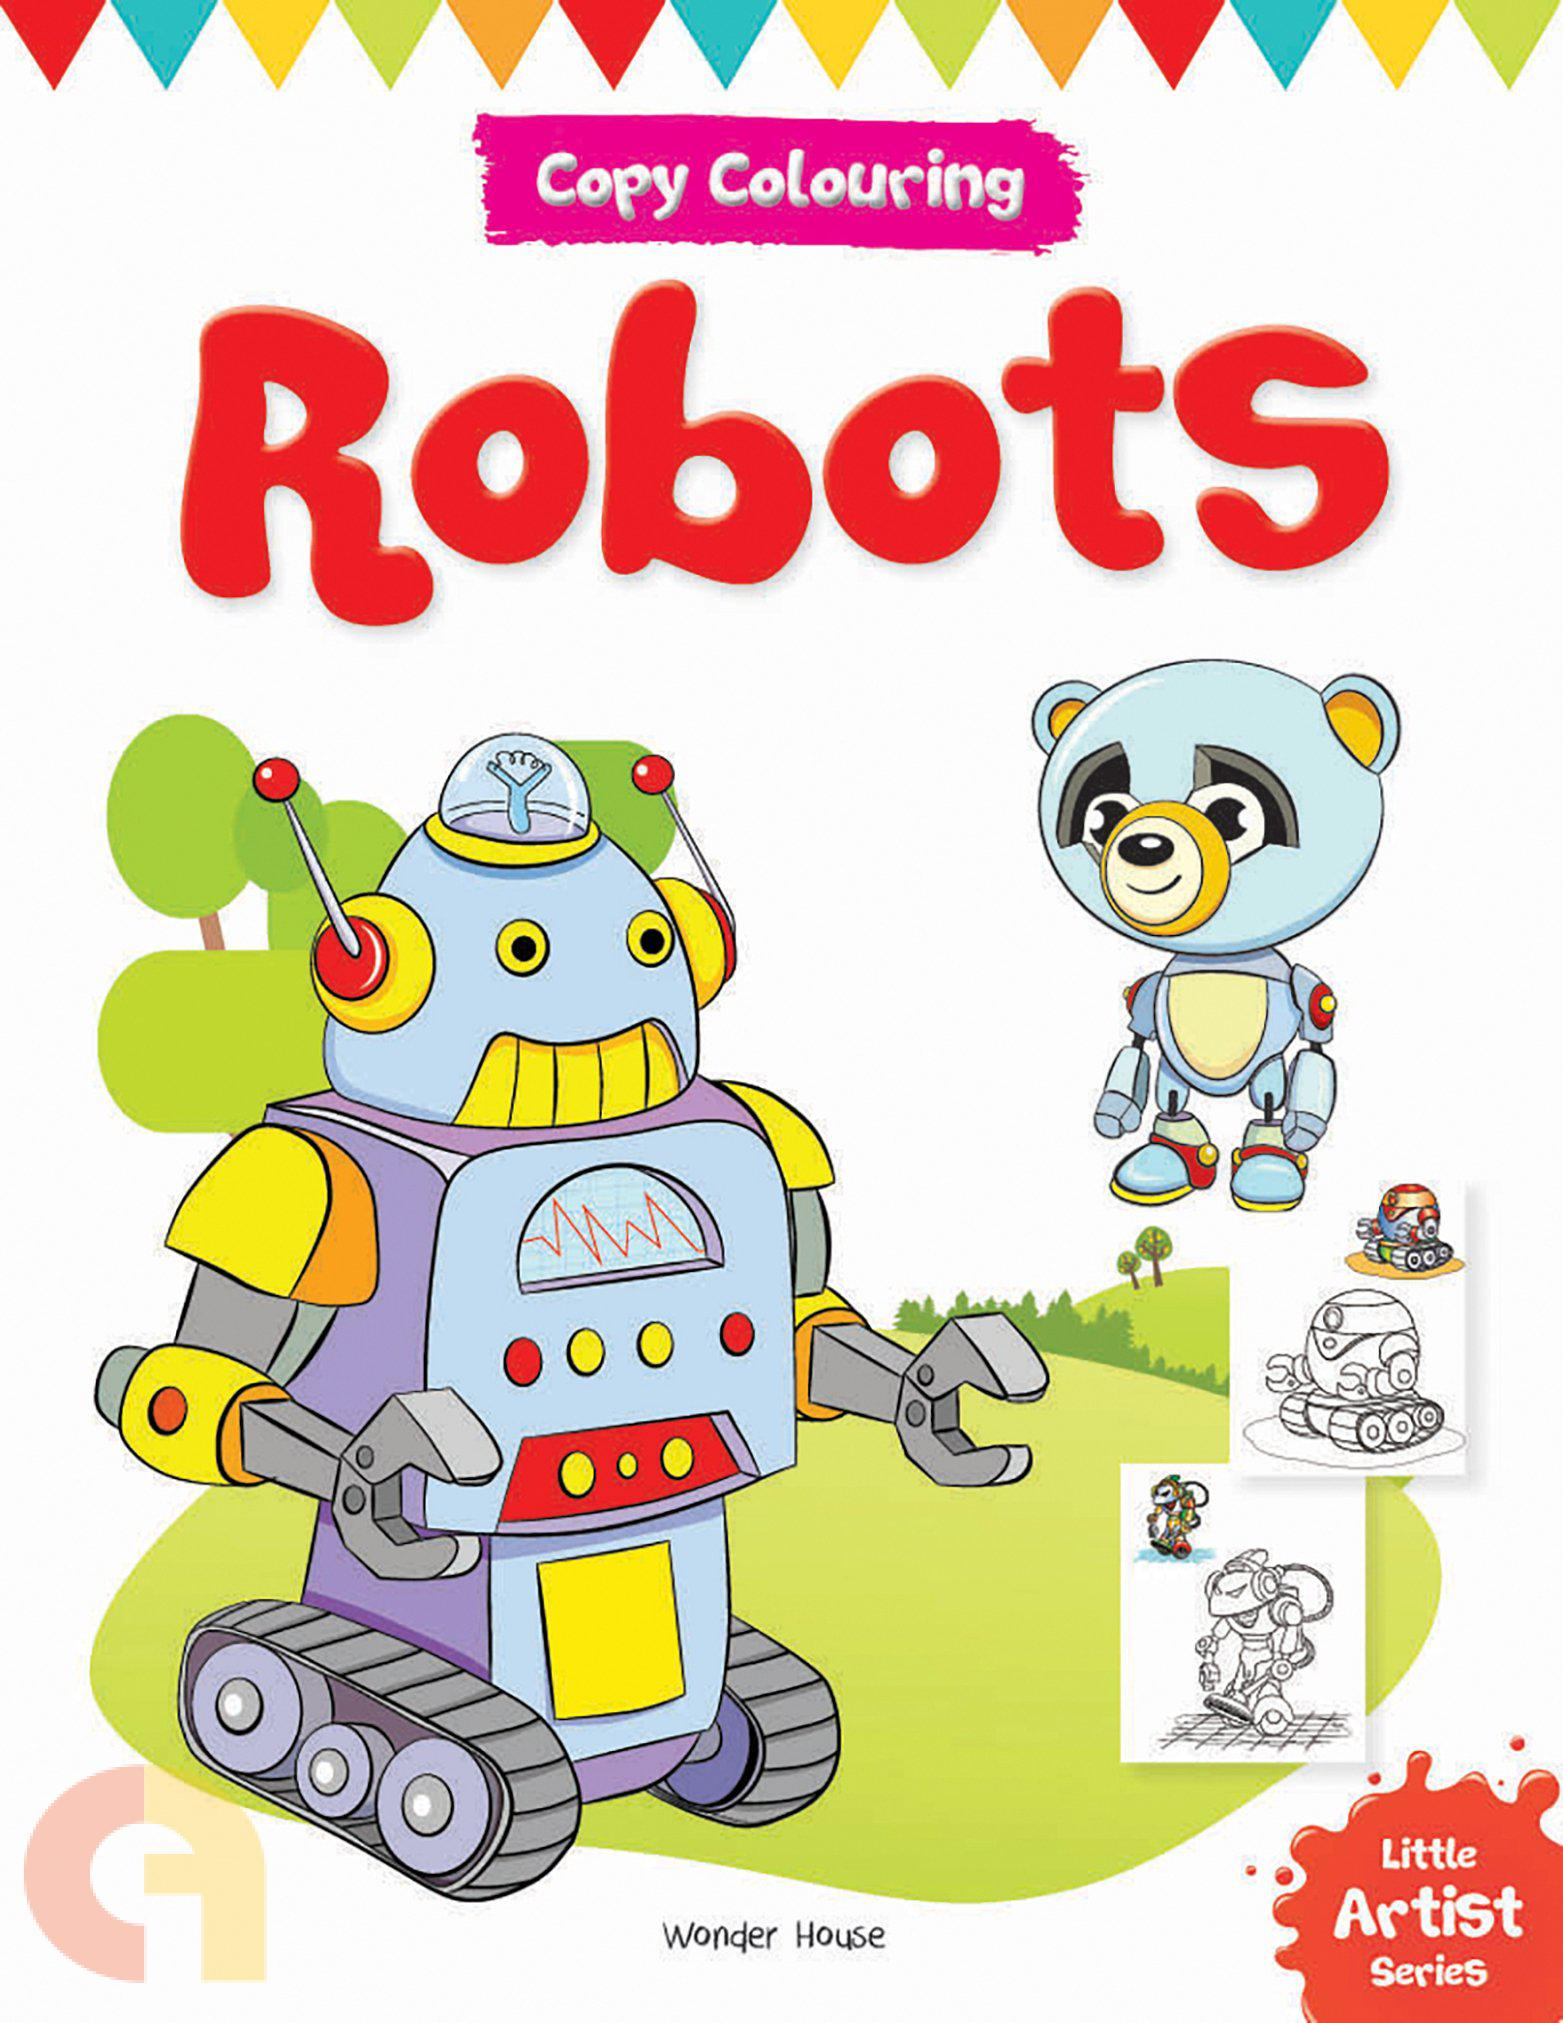 Copy Colouring: Robots